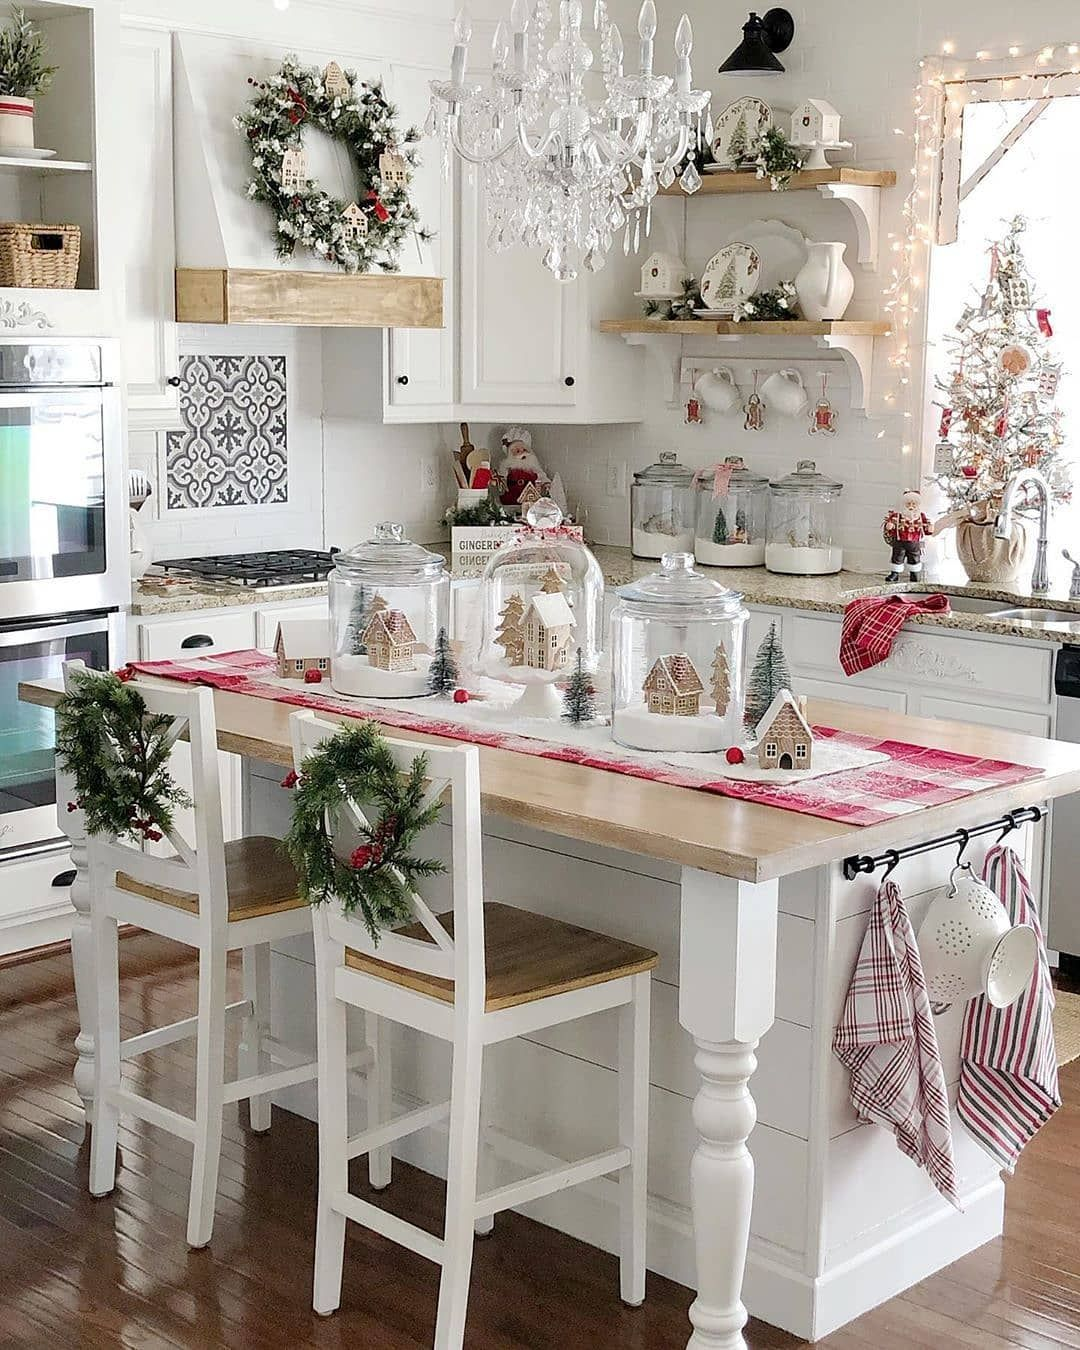 Farmhouse Charm On Instagram This Festive Kitchen Is So Cute